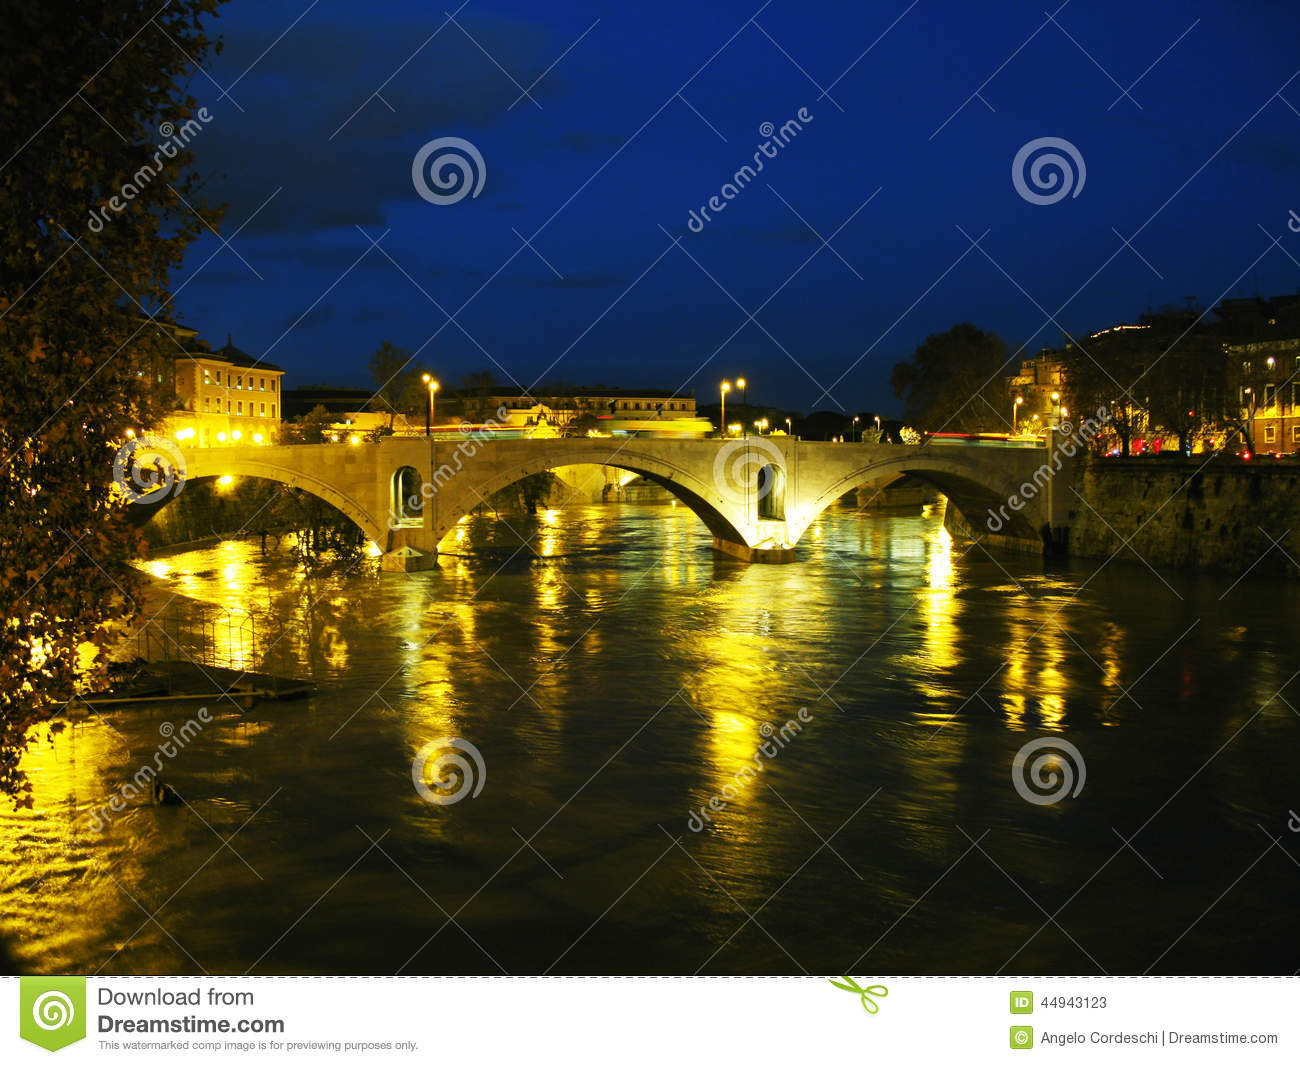 River Tiber at night. Bridige and buildings